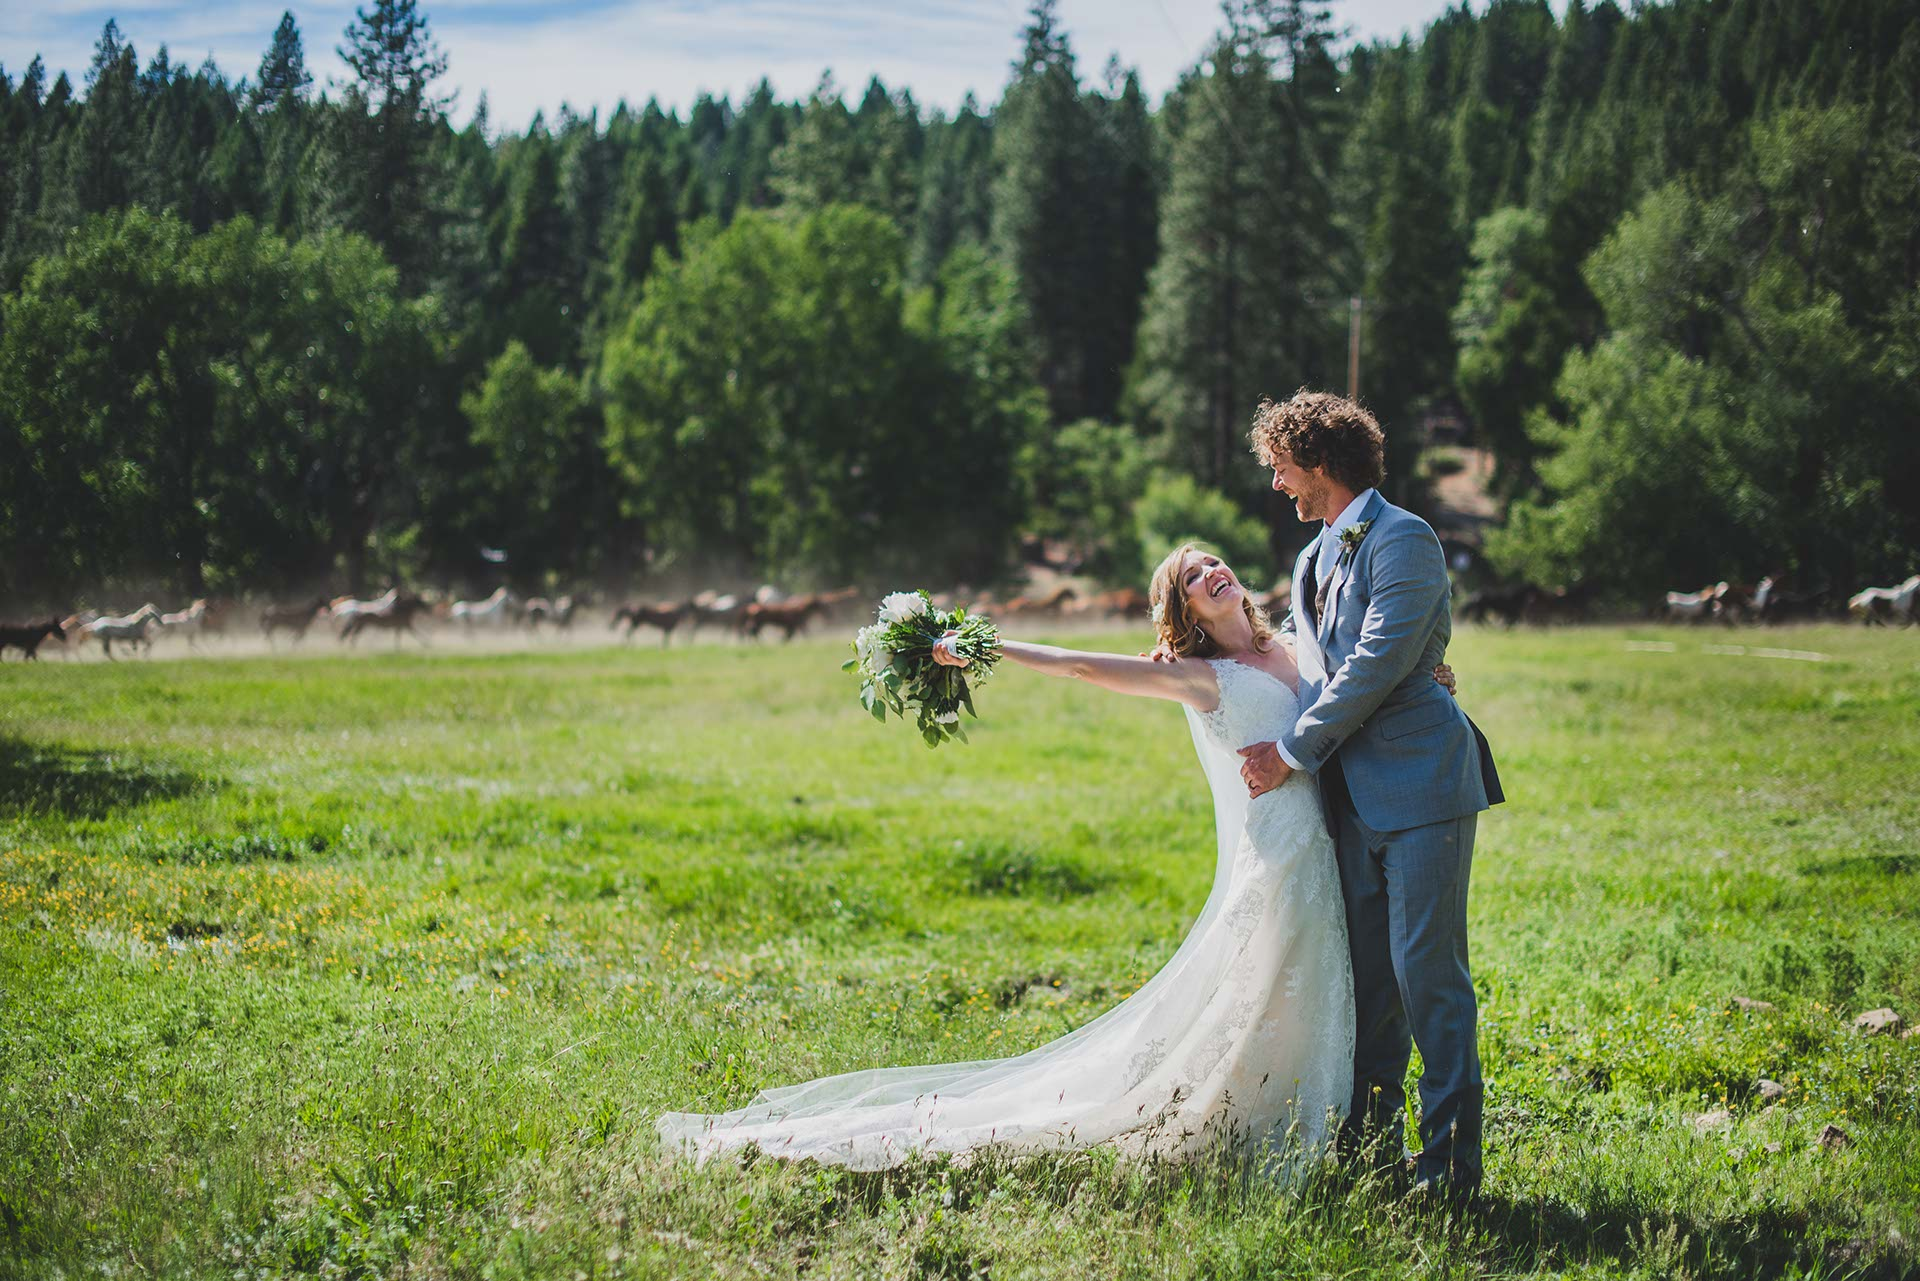 A bride & groom celebrating their wedding in a green grassy field at the Ranch